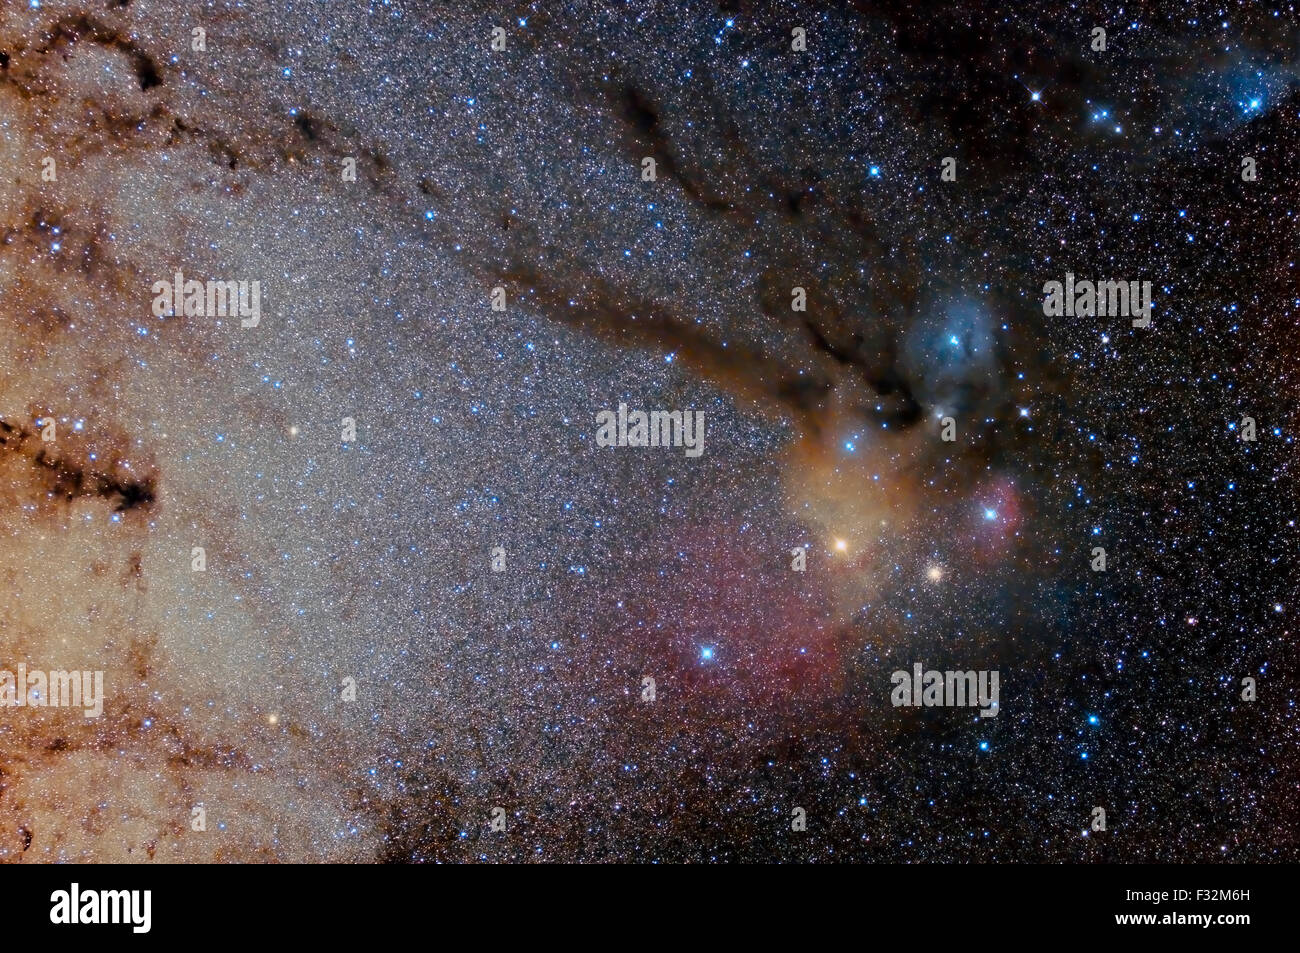 Star field and nebulae in Sagittarius and Rho Ophiuchus - Stock Image